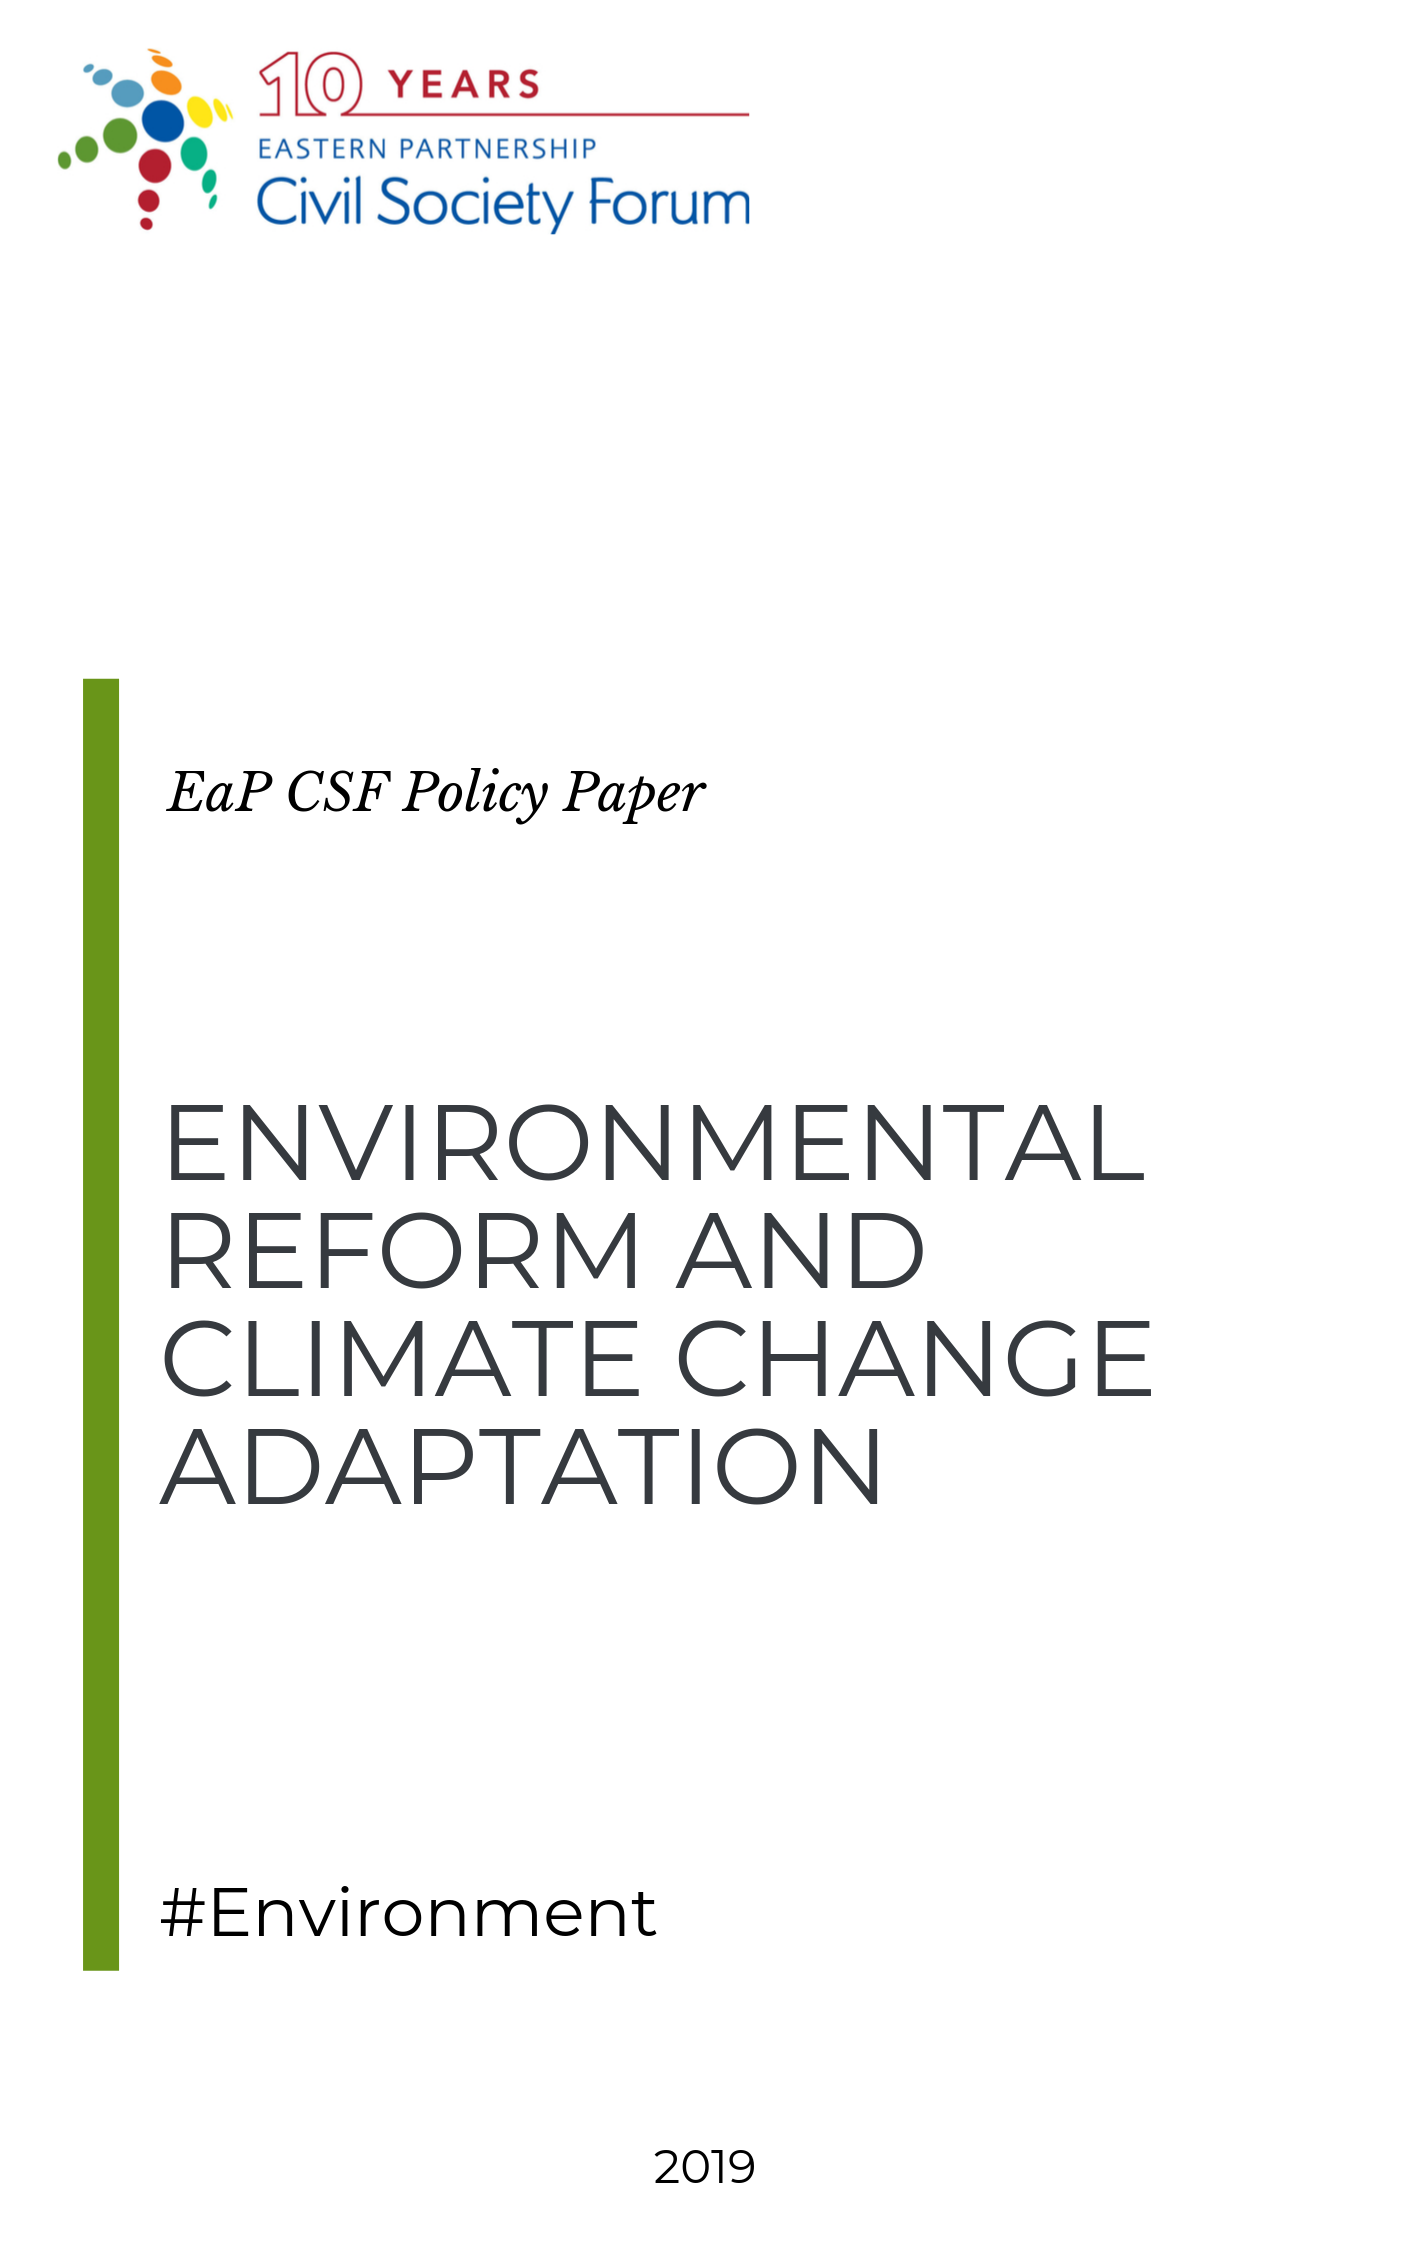 Environmental Reform and Climate Change Adaptation